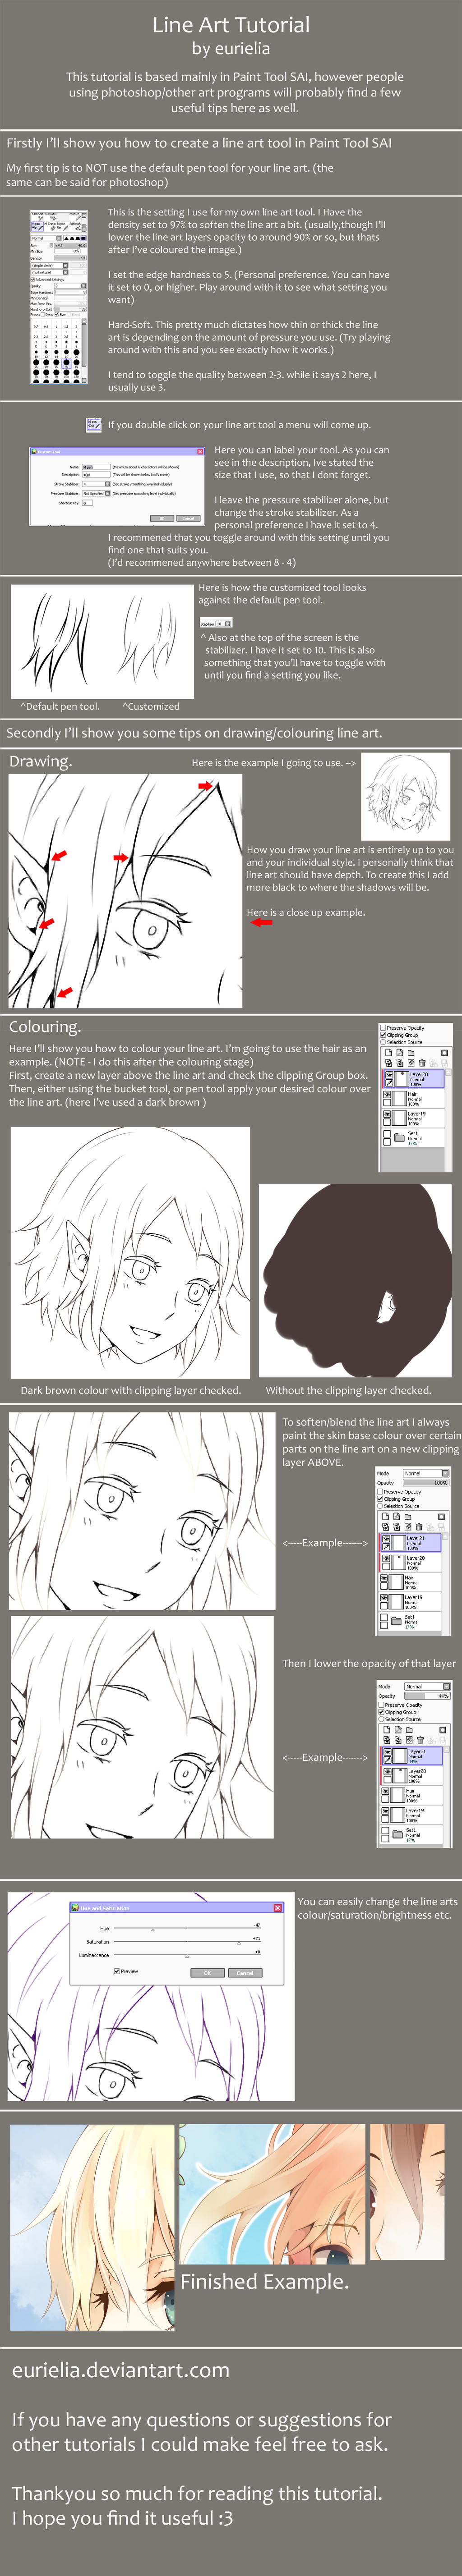 Lineart tutorial by Miss-Ariellia